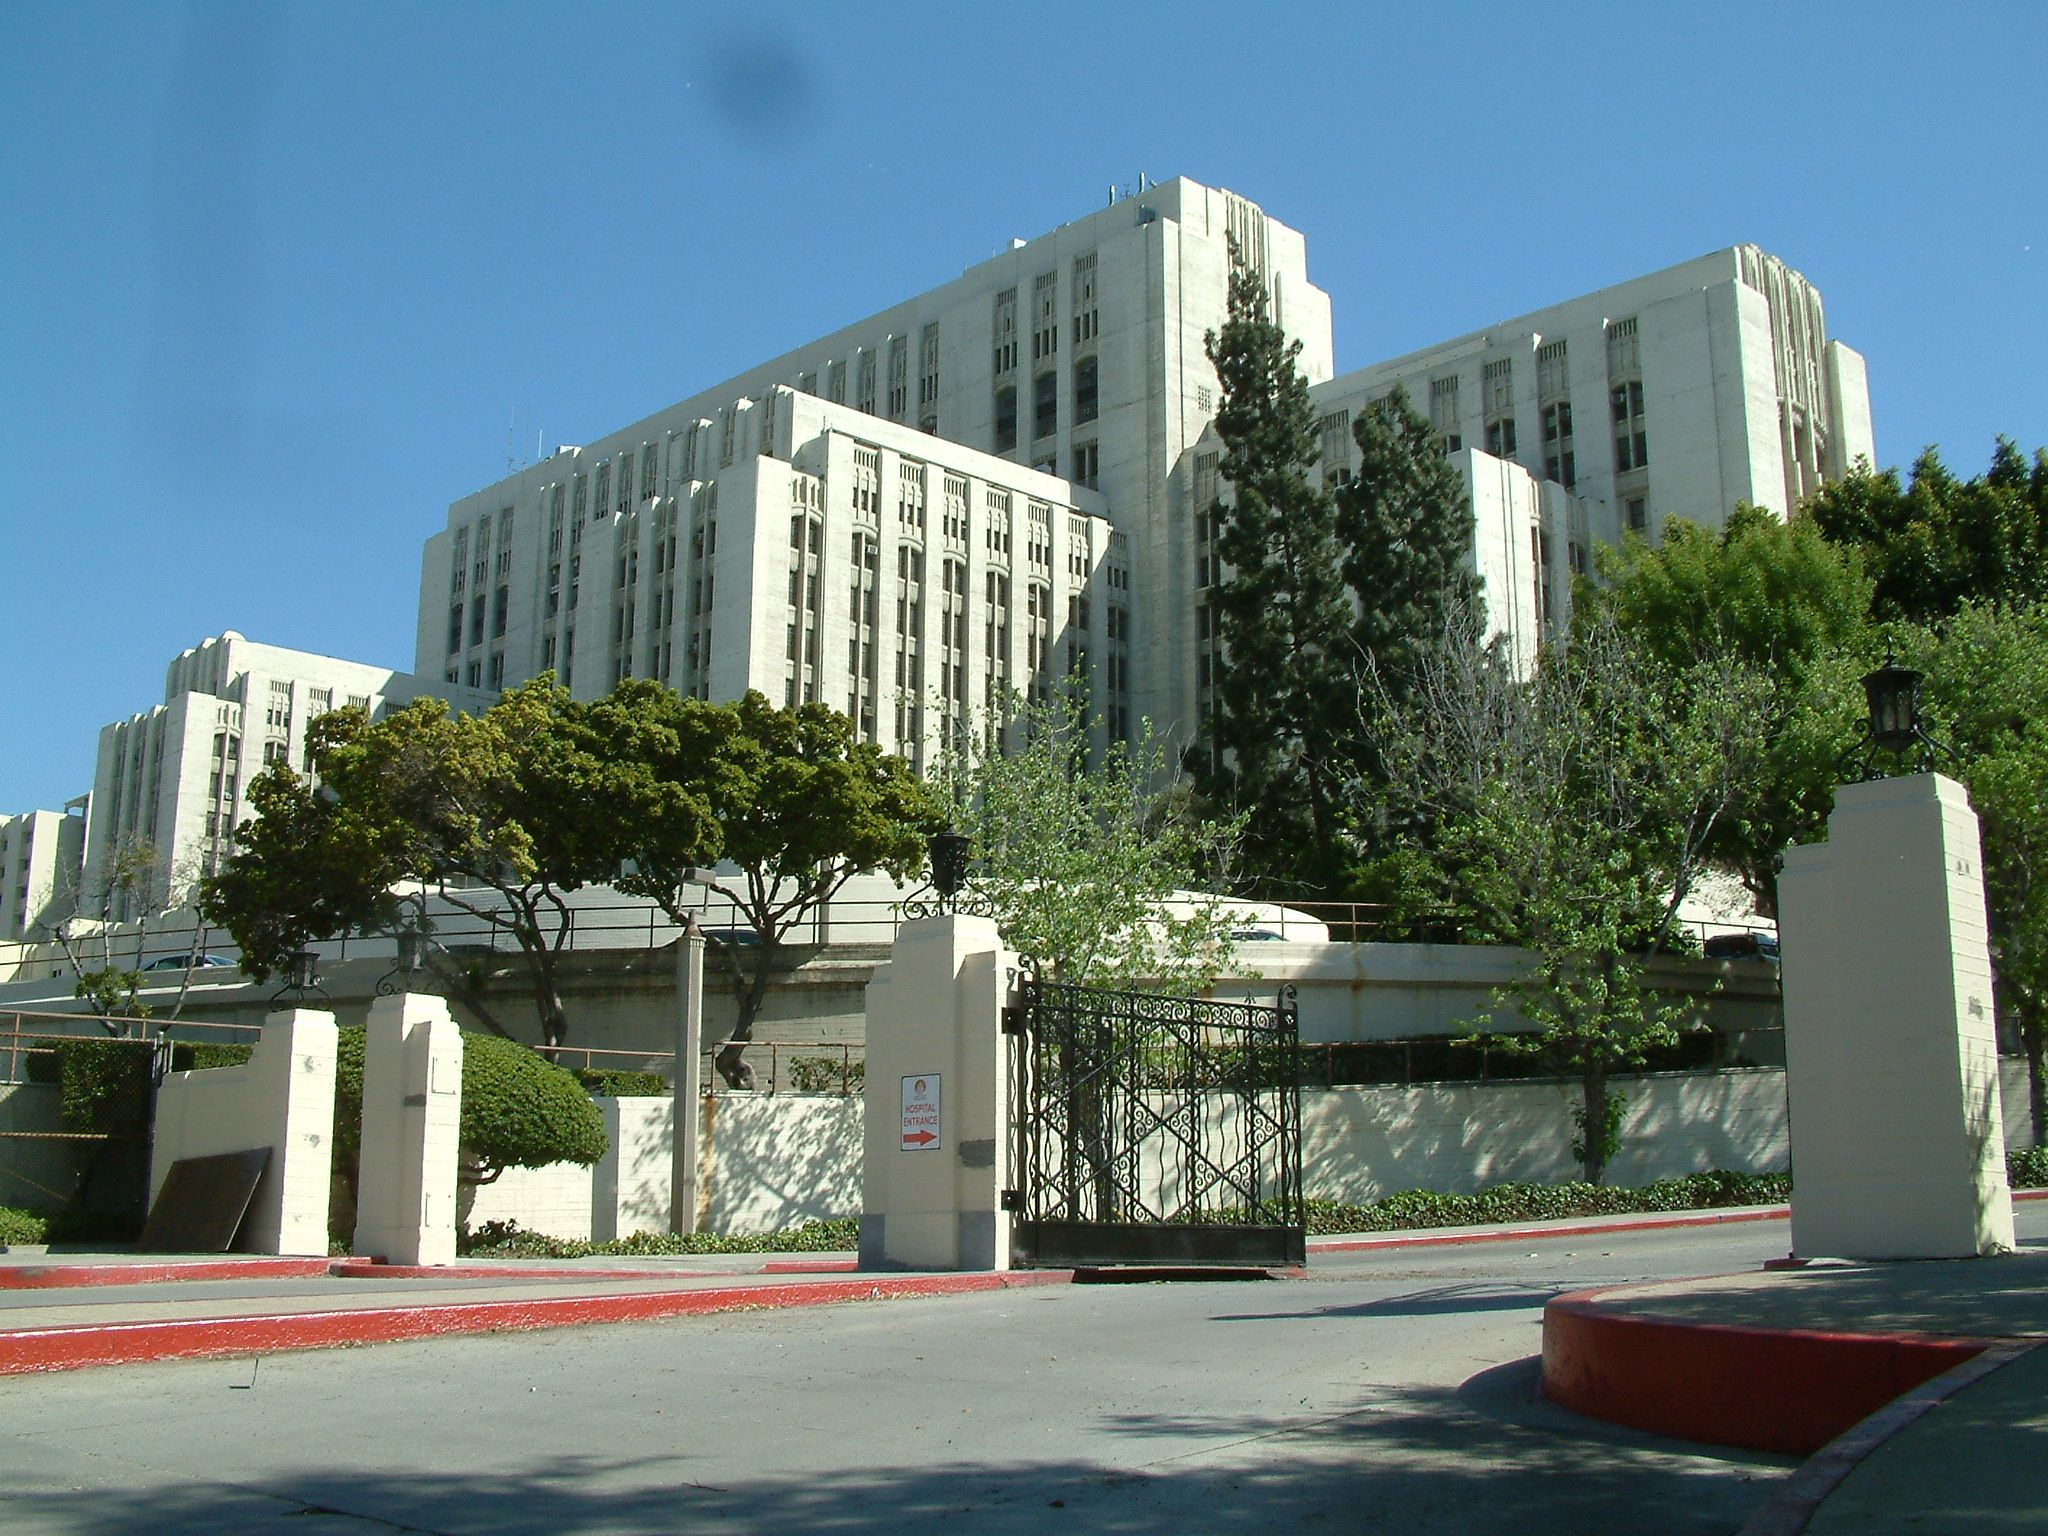 los angeles general hospital google search